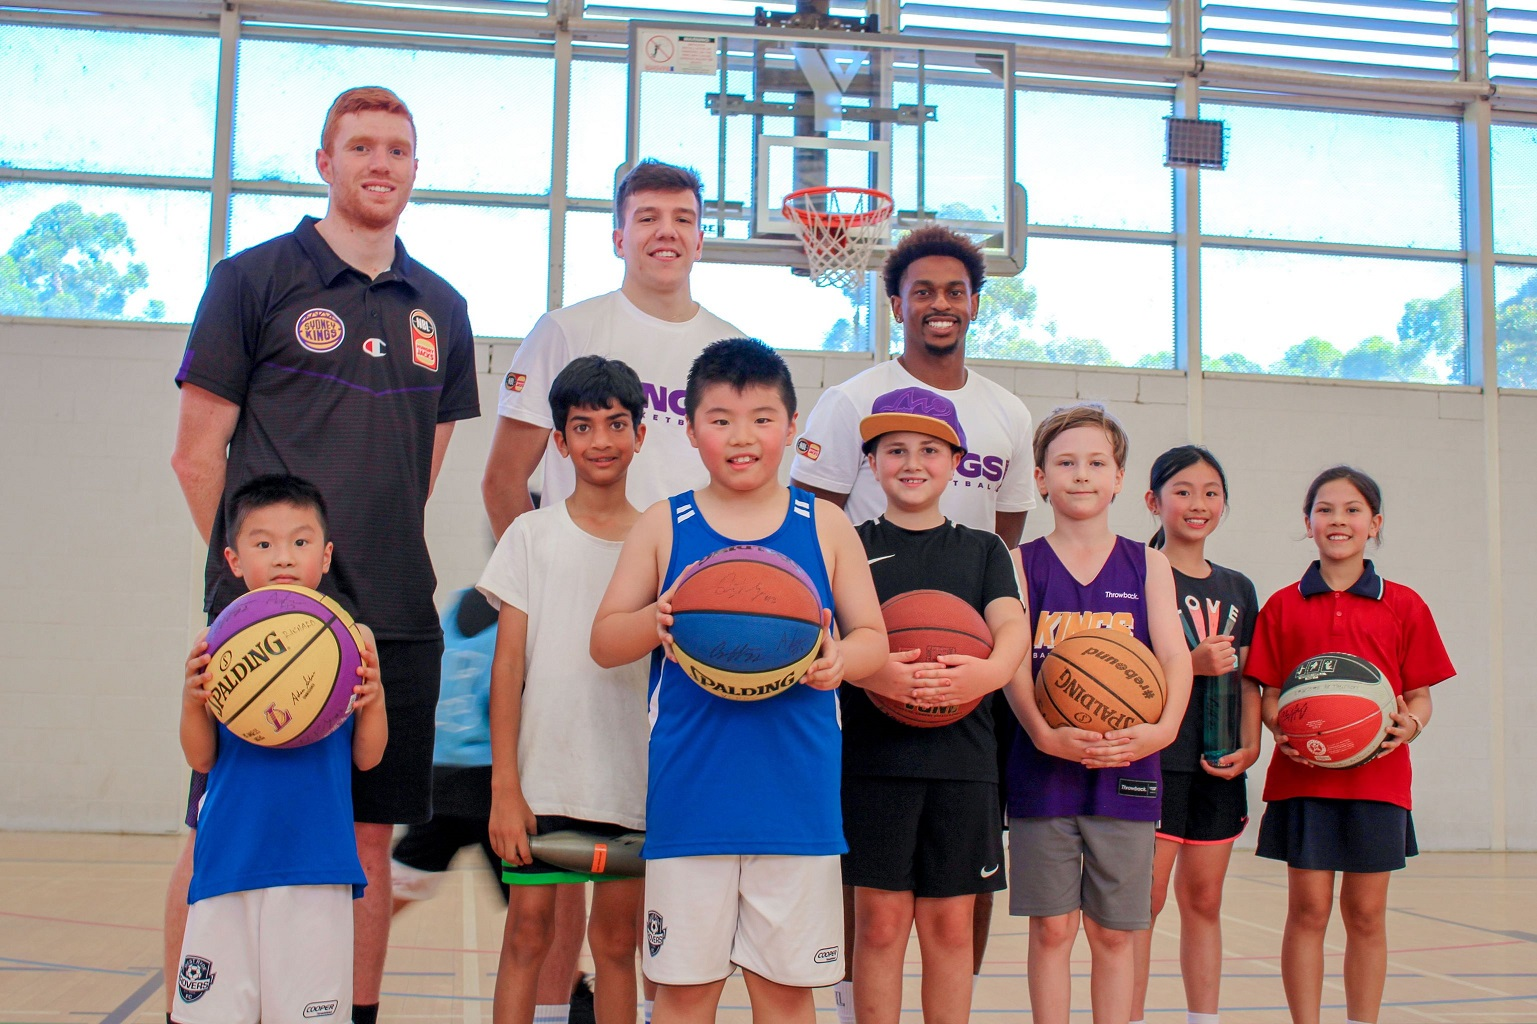 Sydney Kings players Angus Glover, Casper Ware and Dejan Vasiljevic with junior players from the Y NSW Learn to Play Basketball session at Ryde